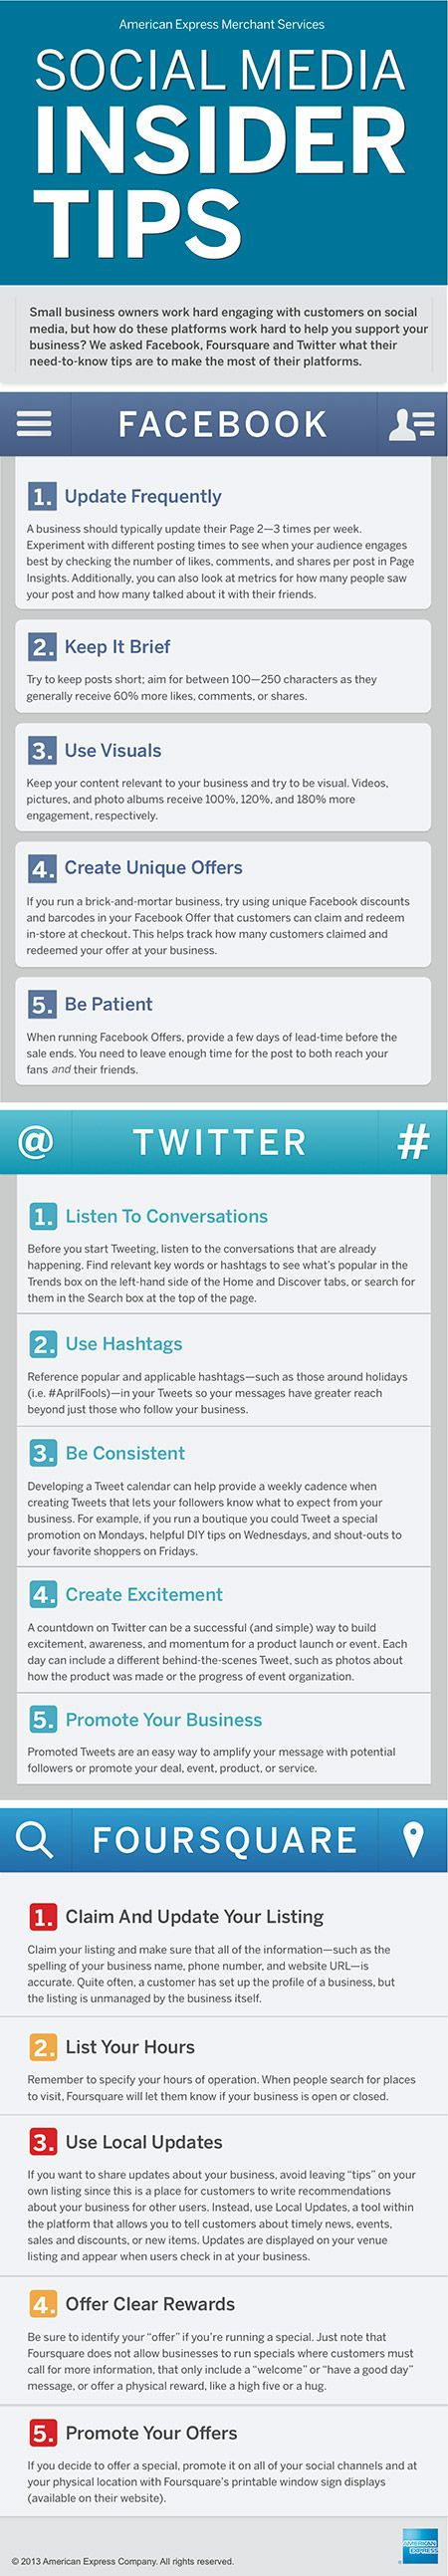 Social Media Tips from American Express.   #webdesignqca  #affordablewebdesign  #affordablelogos  Excellent tips from AmEx.  They certainly know what they're doing.